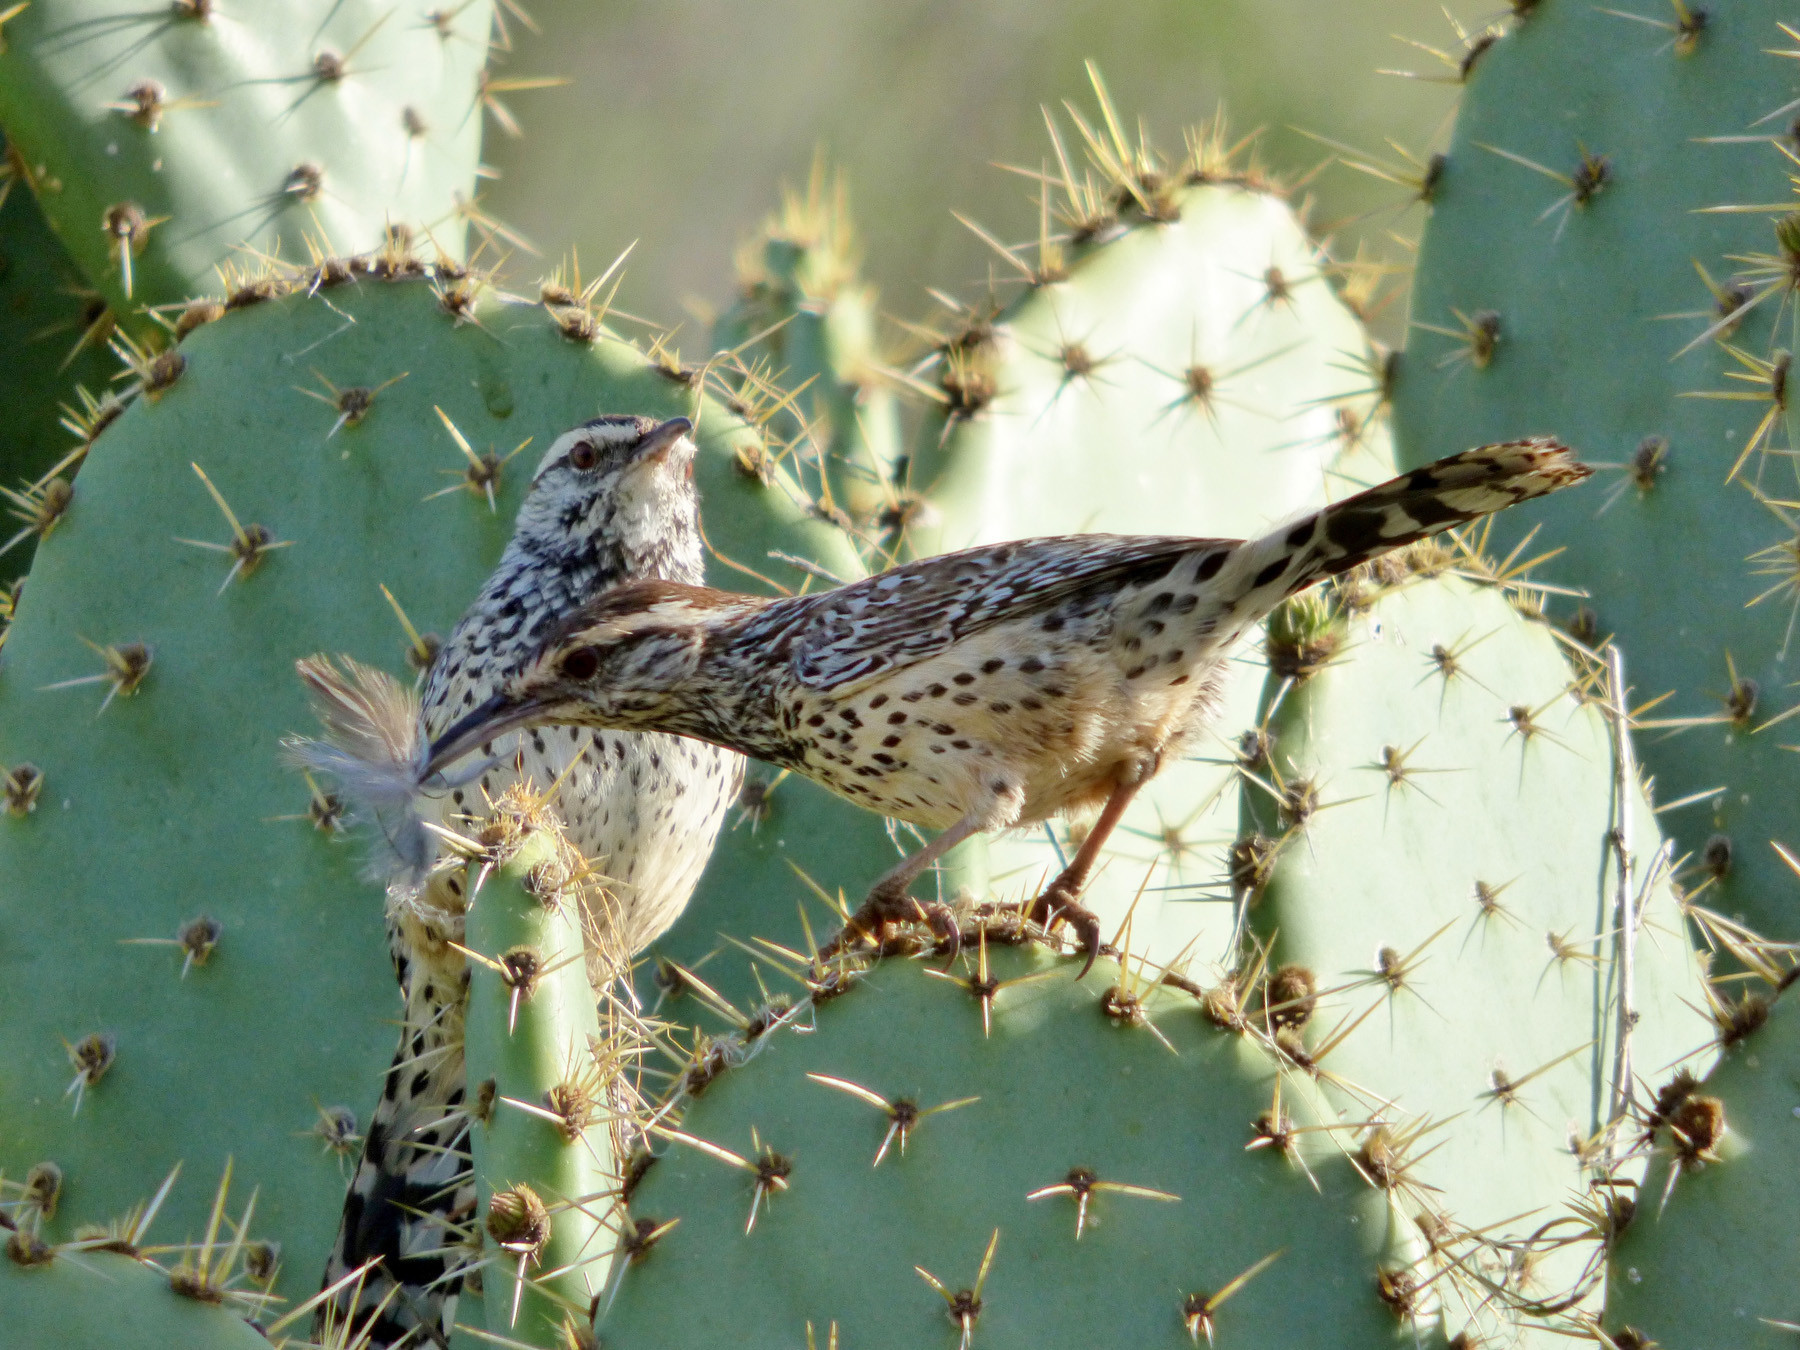 A pair of coastal cactus wren, a threatened species in the area.